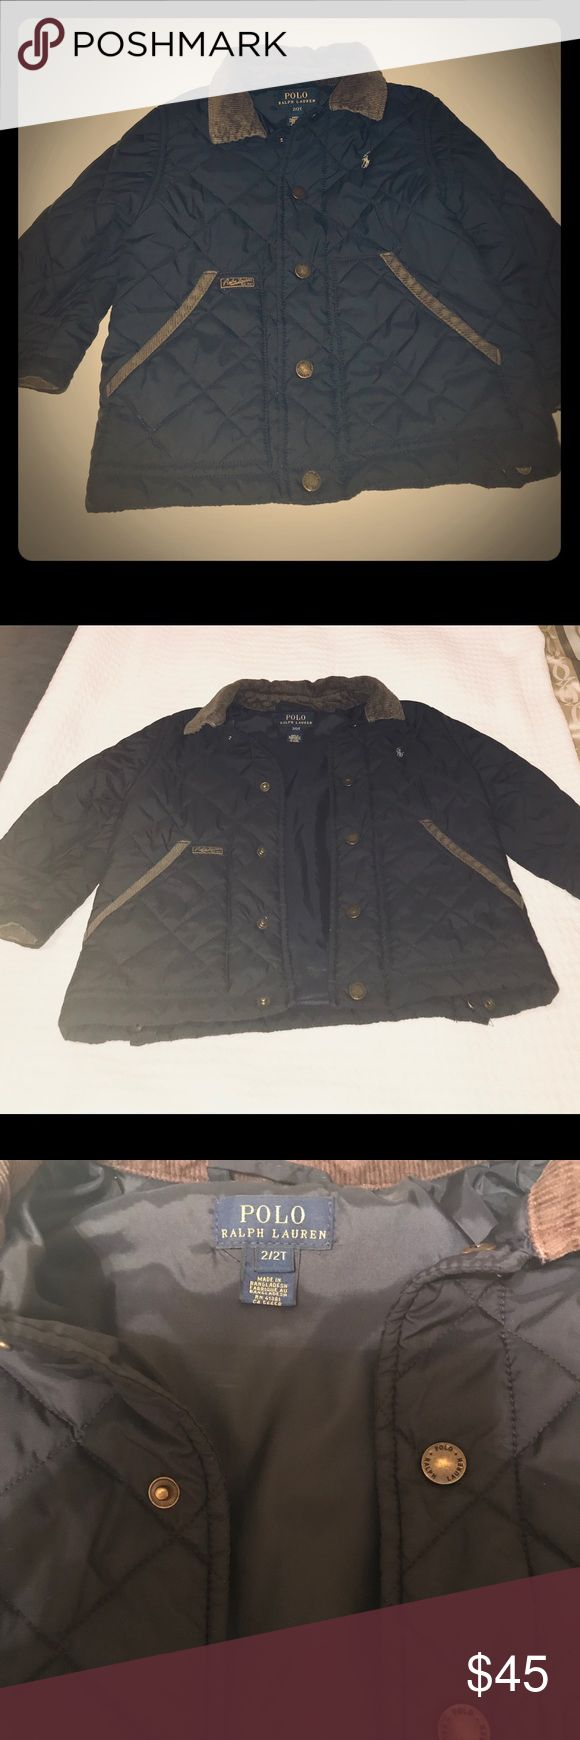 Boys 2t polo jacket. Adorable little boys polo jacket, worn twice, excellent condition, perfect for cold weather. My son wore it when he was 2 and again when he was 3. Polo by Ralph Lauren Jackets & Coats